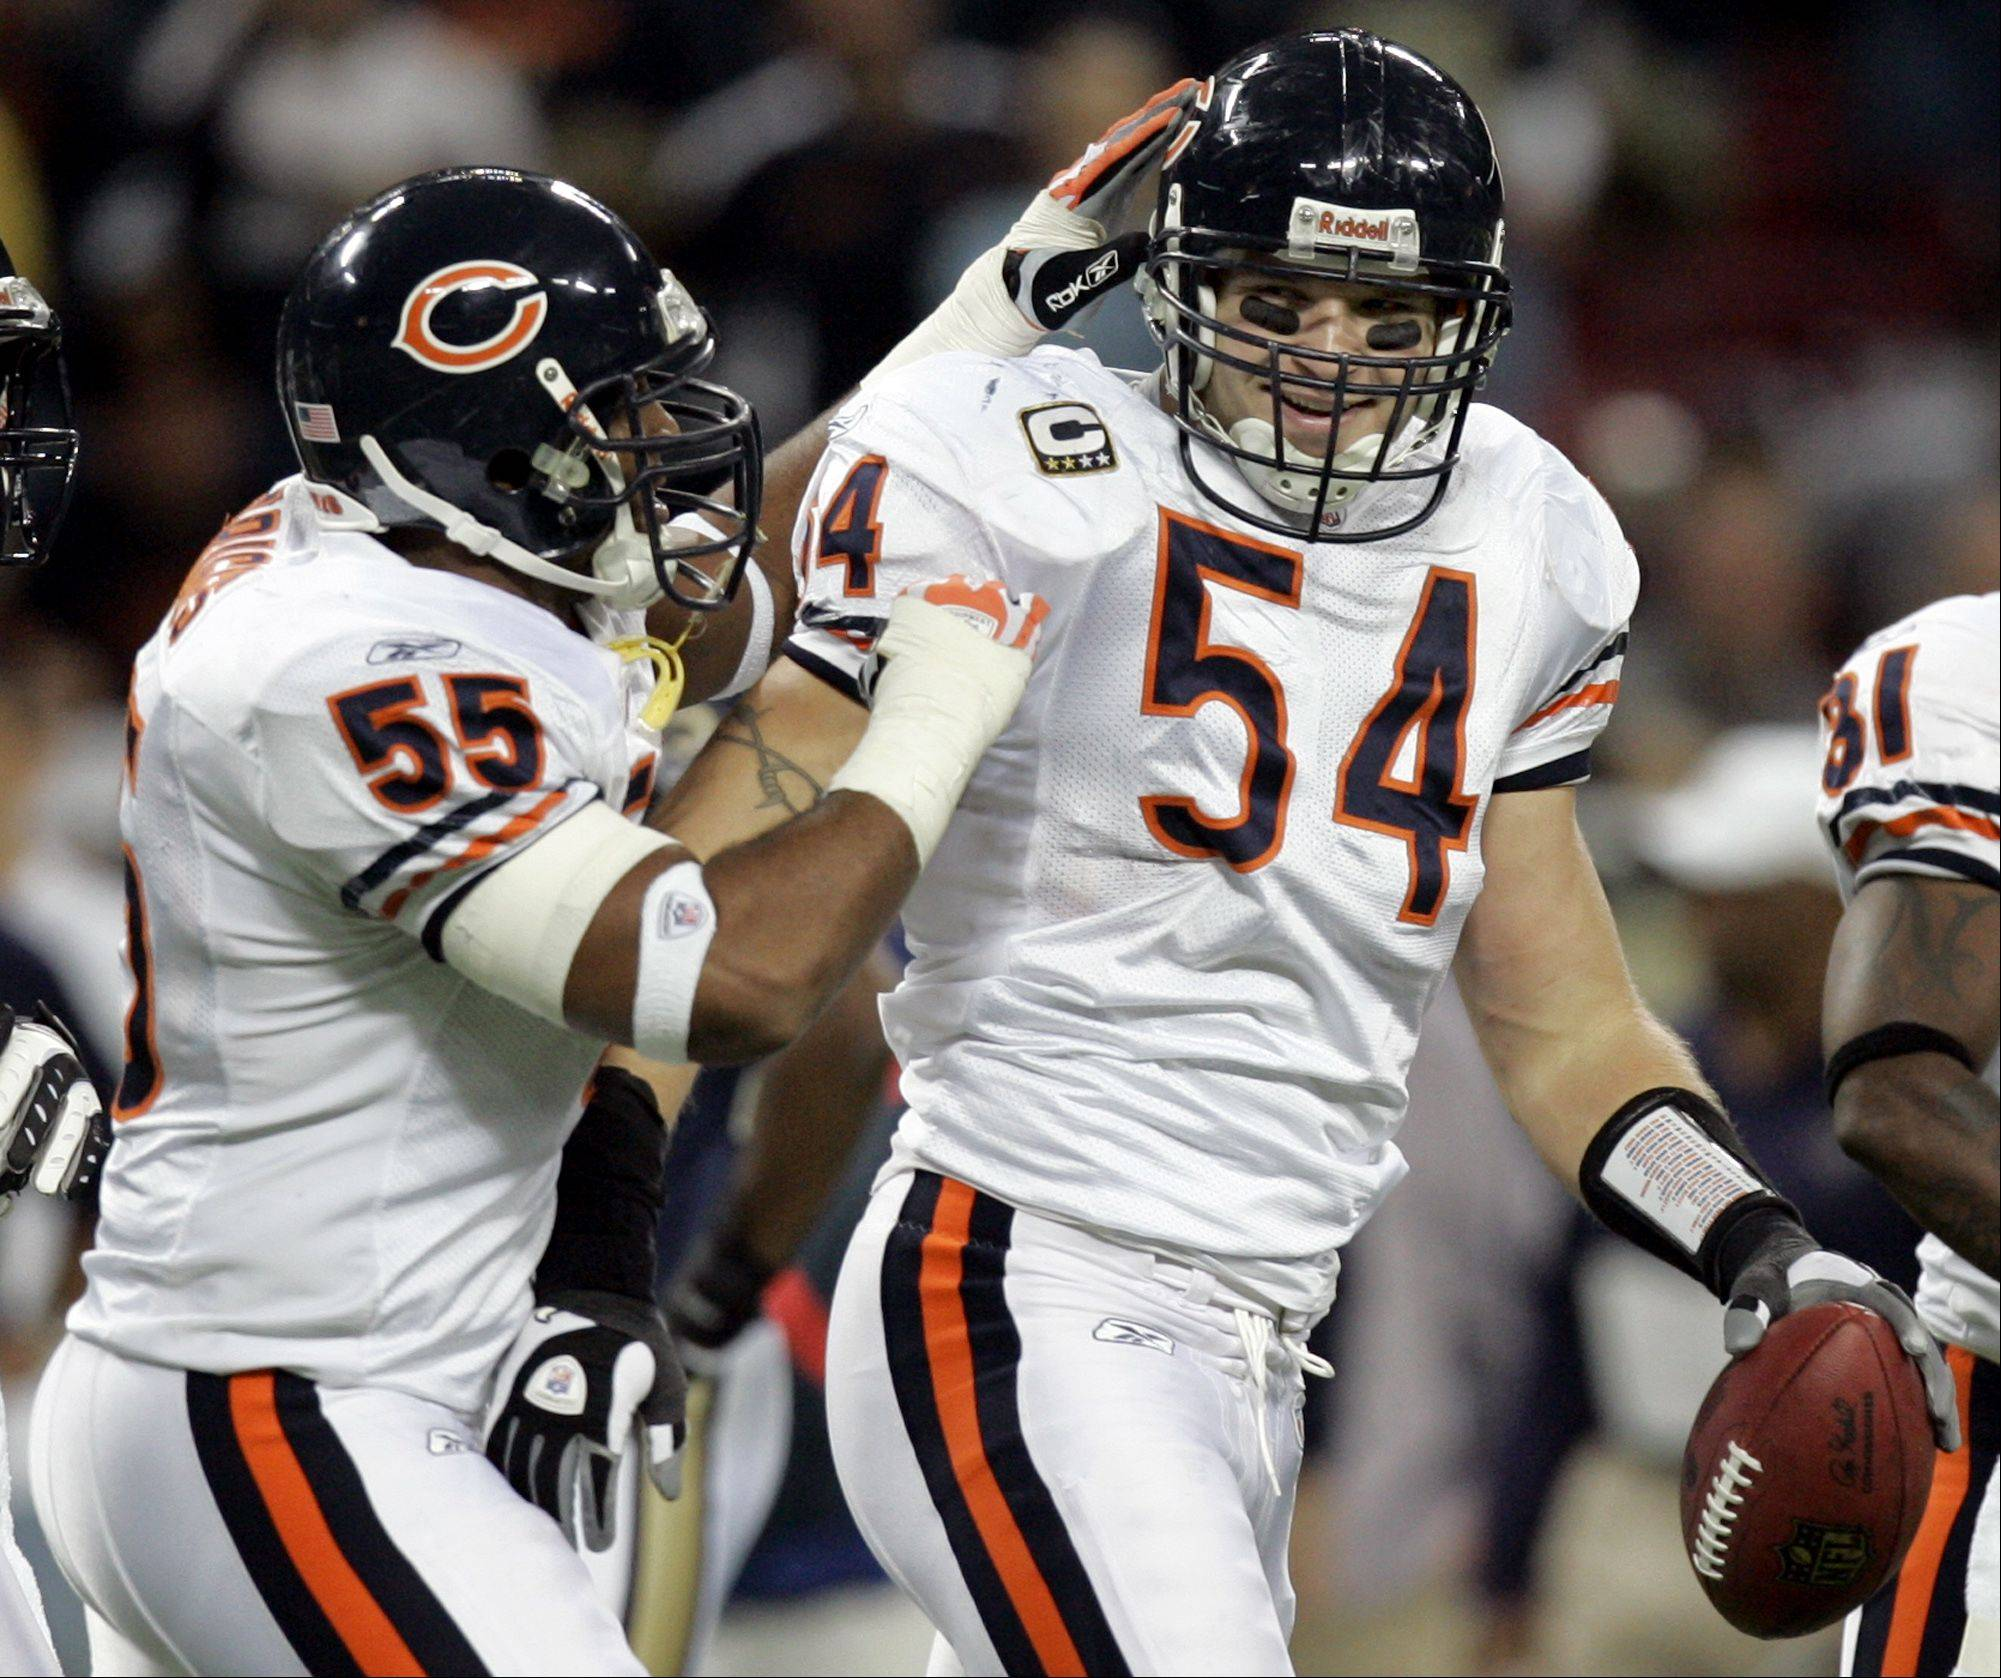 Brian Urlacher's surgically repaired left knee has caused him to miss the last nine training camp practices.